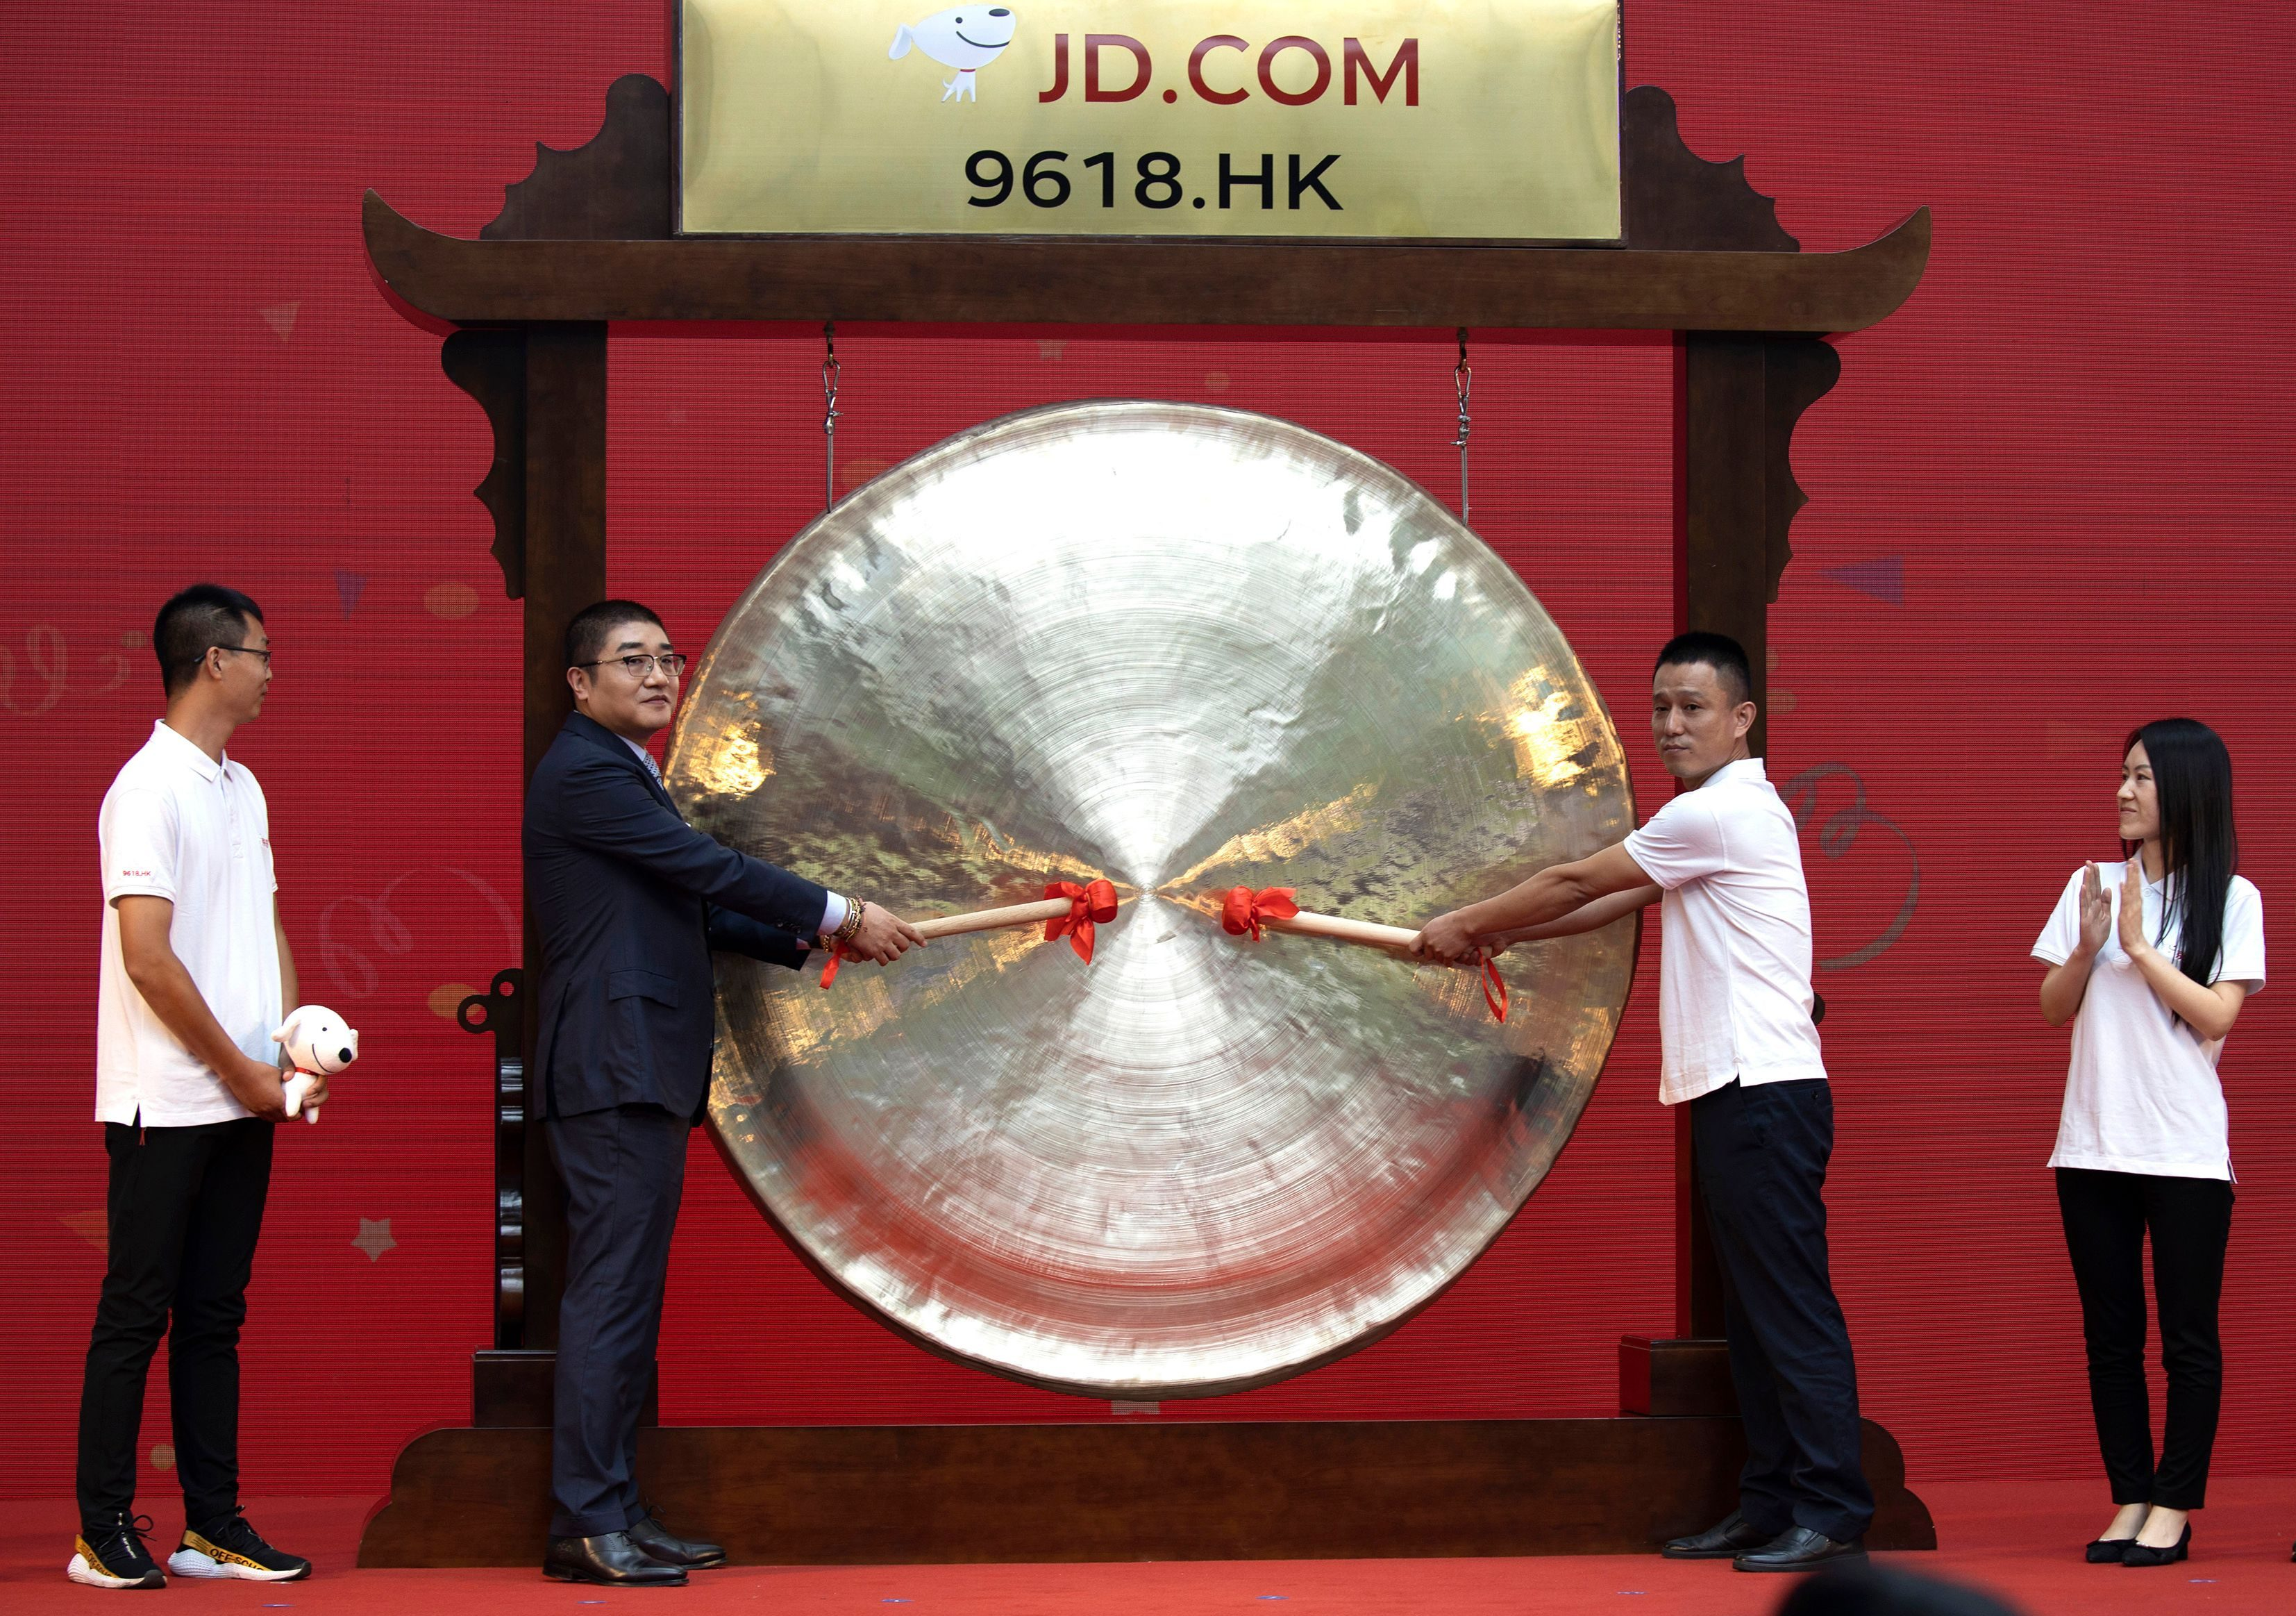 Xu Lei, head of JD Retail, second from left, sounds the gong to mark the listing of JD.com on the Hong Kong Stock Exchange.